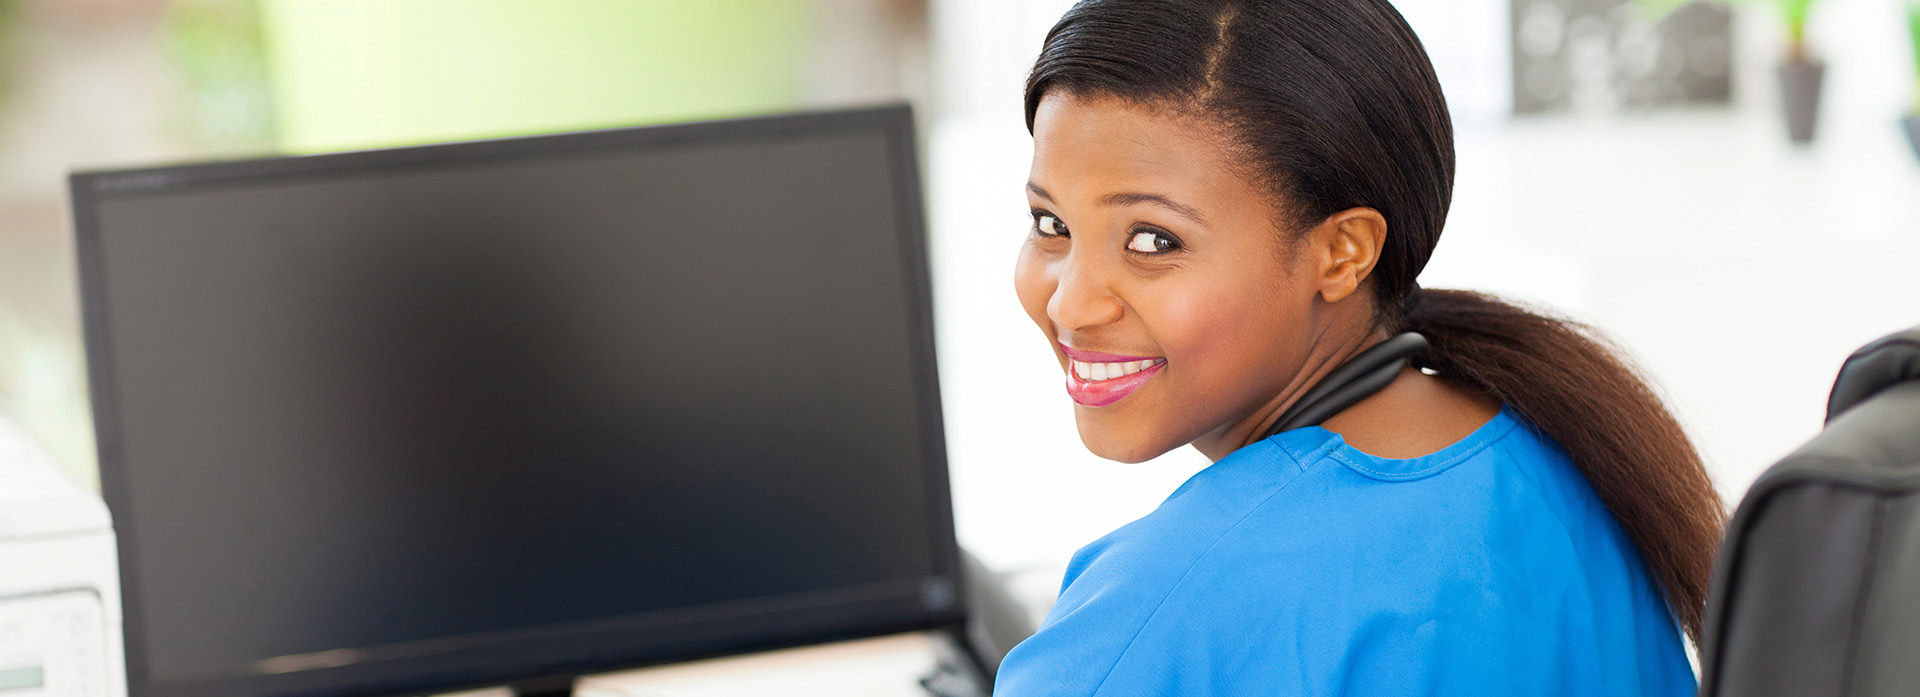 Clinical Medical Assistant (CMA) smiling while using the computer